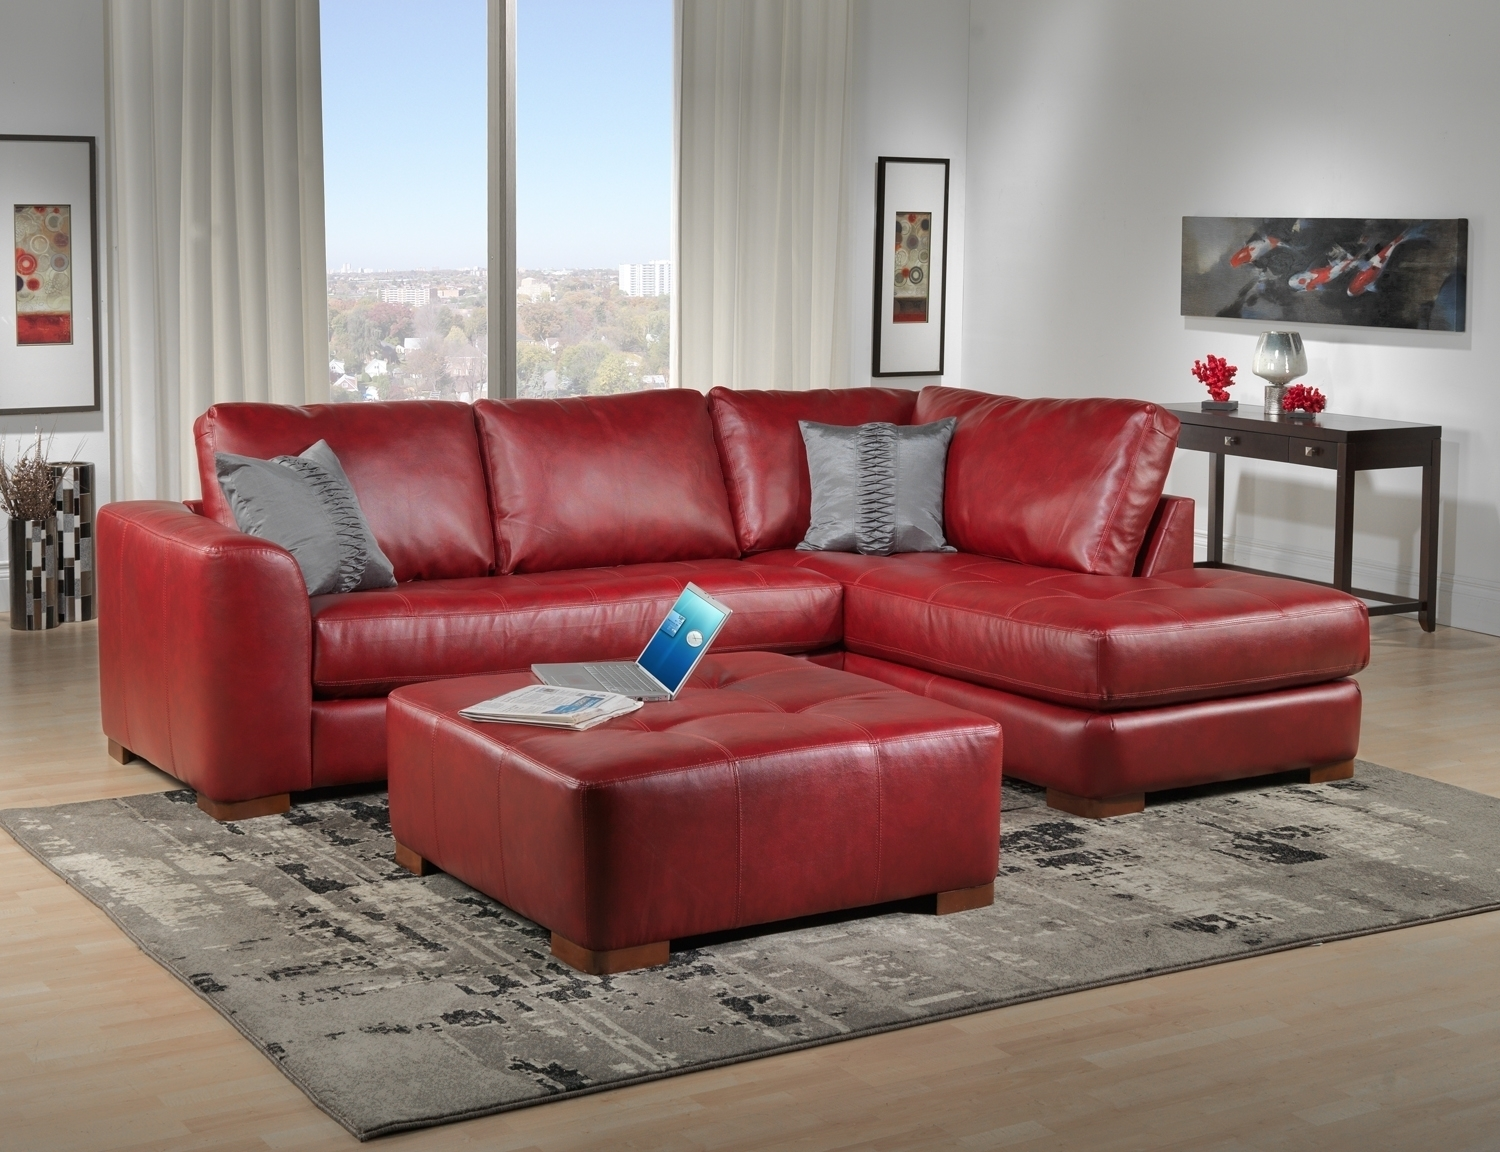 Decorating Ideas Living Room Red Leather Sofa | Living Room Ideas For Red Leather Couches For Living Room (Image 2 of 10)